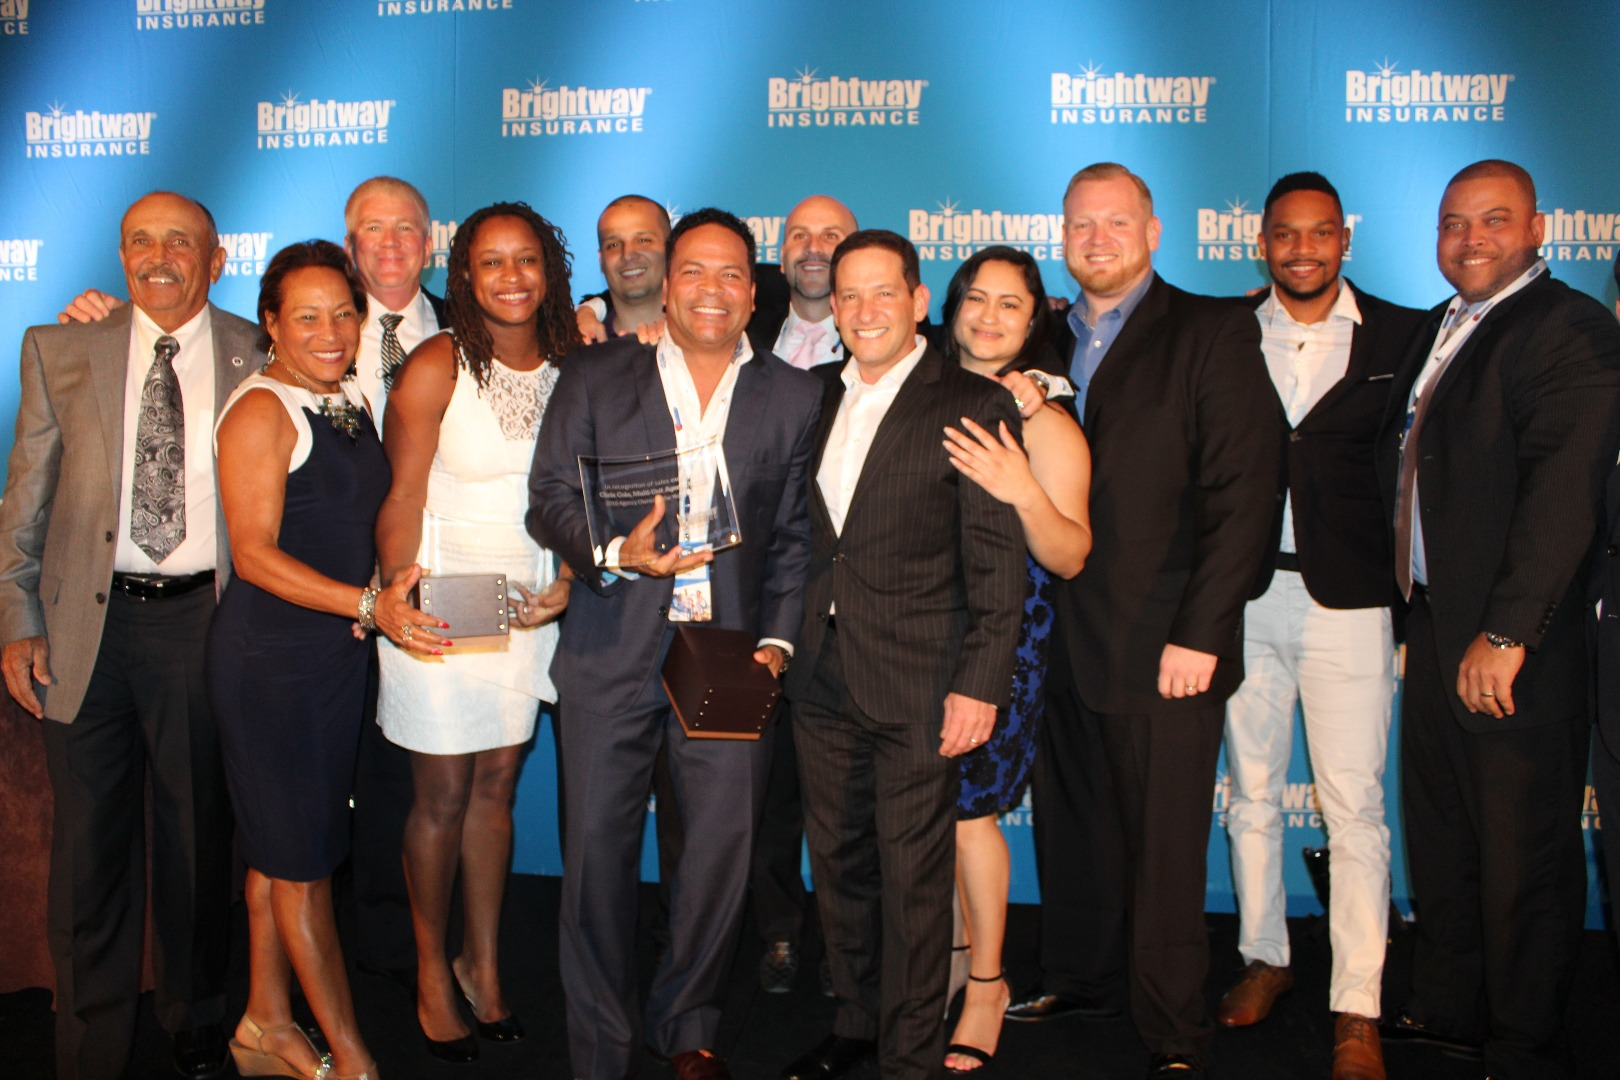 01.20.2017_Multi-unit Owner, Chris Cole, brings home Brightway Insurance's top award for exceptional performance in 2016.JPG